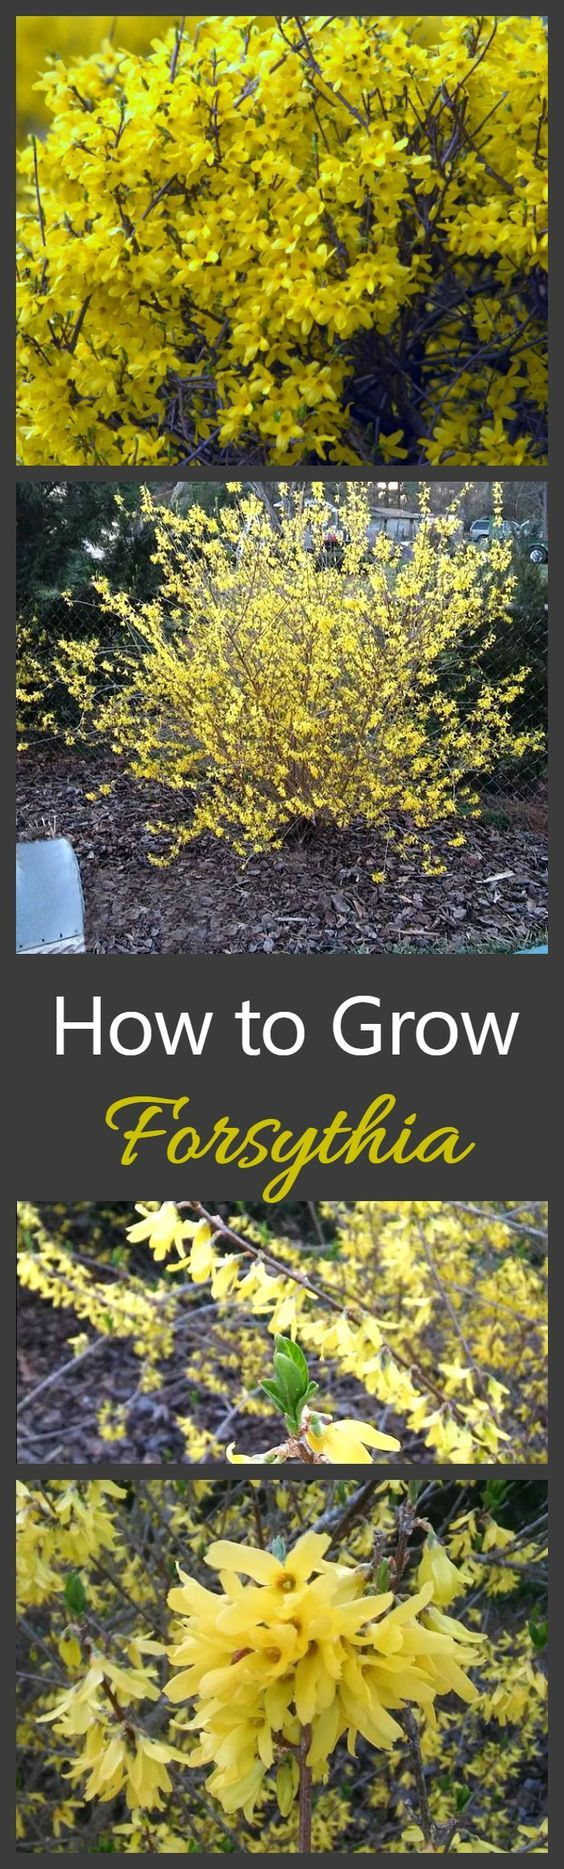 Best 25 yellow flowering bush ideas on pinterest yellow shrubs growing forsythia bushes is one of the best ways to get a really early show of dhlflorist Gallery